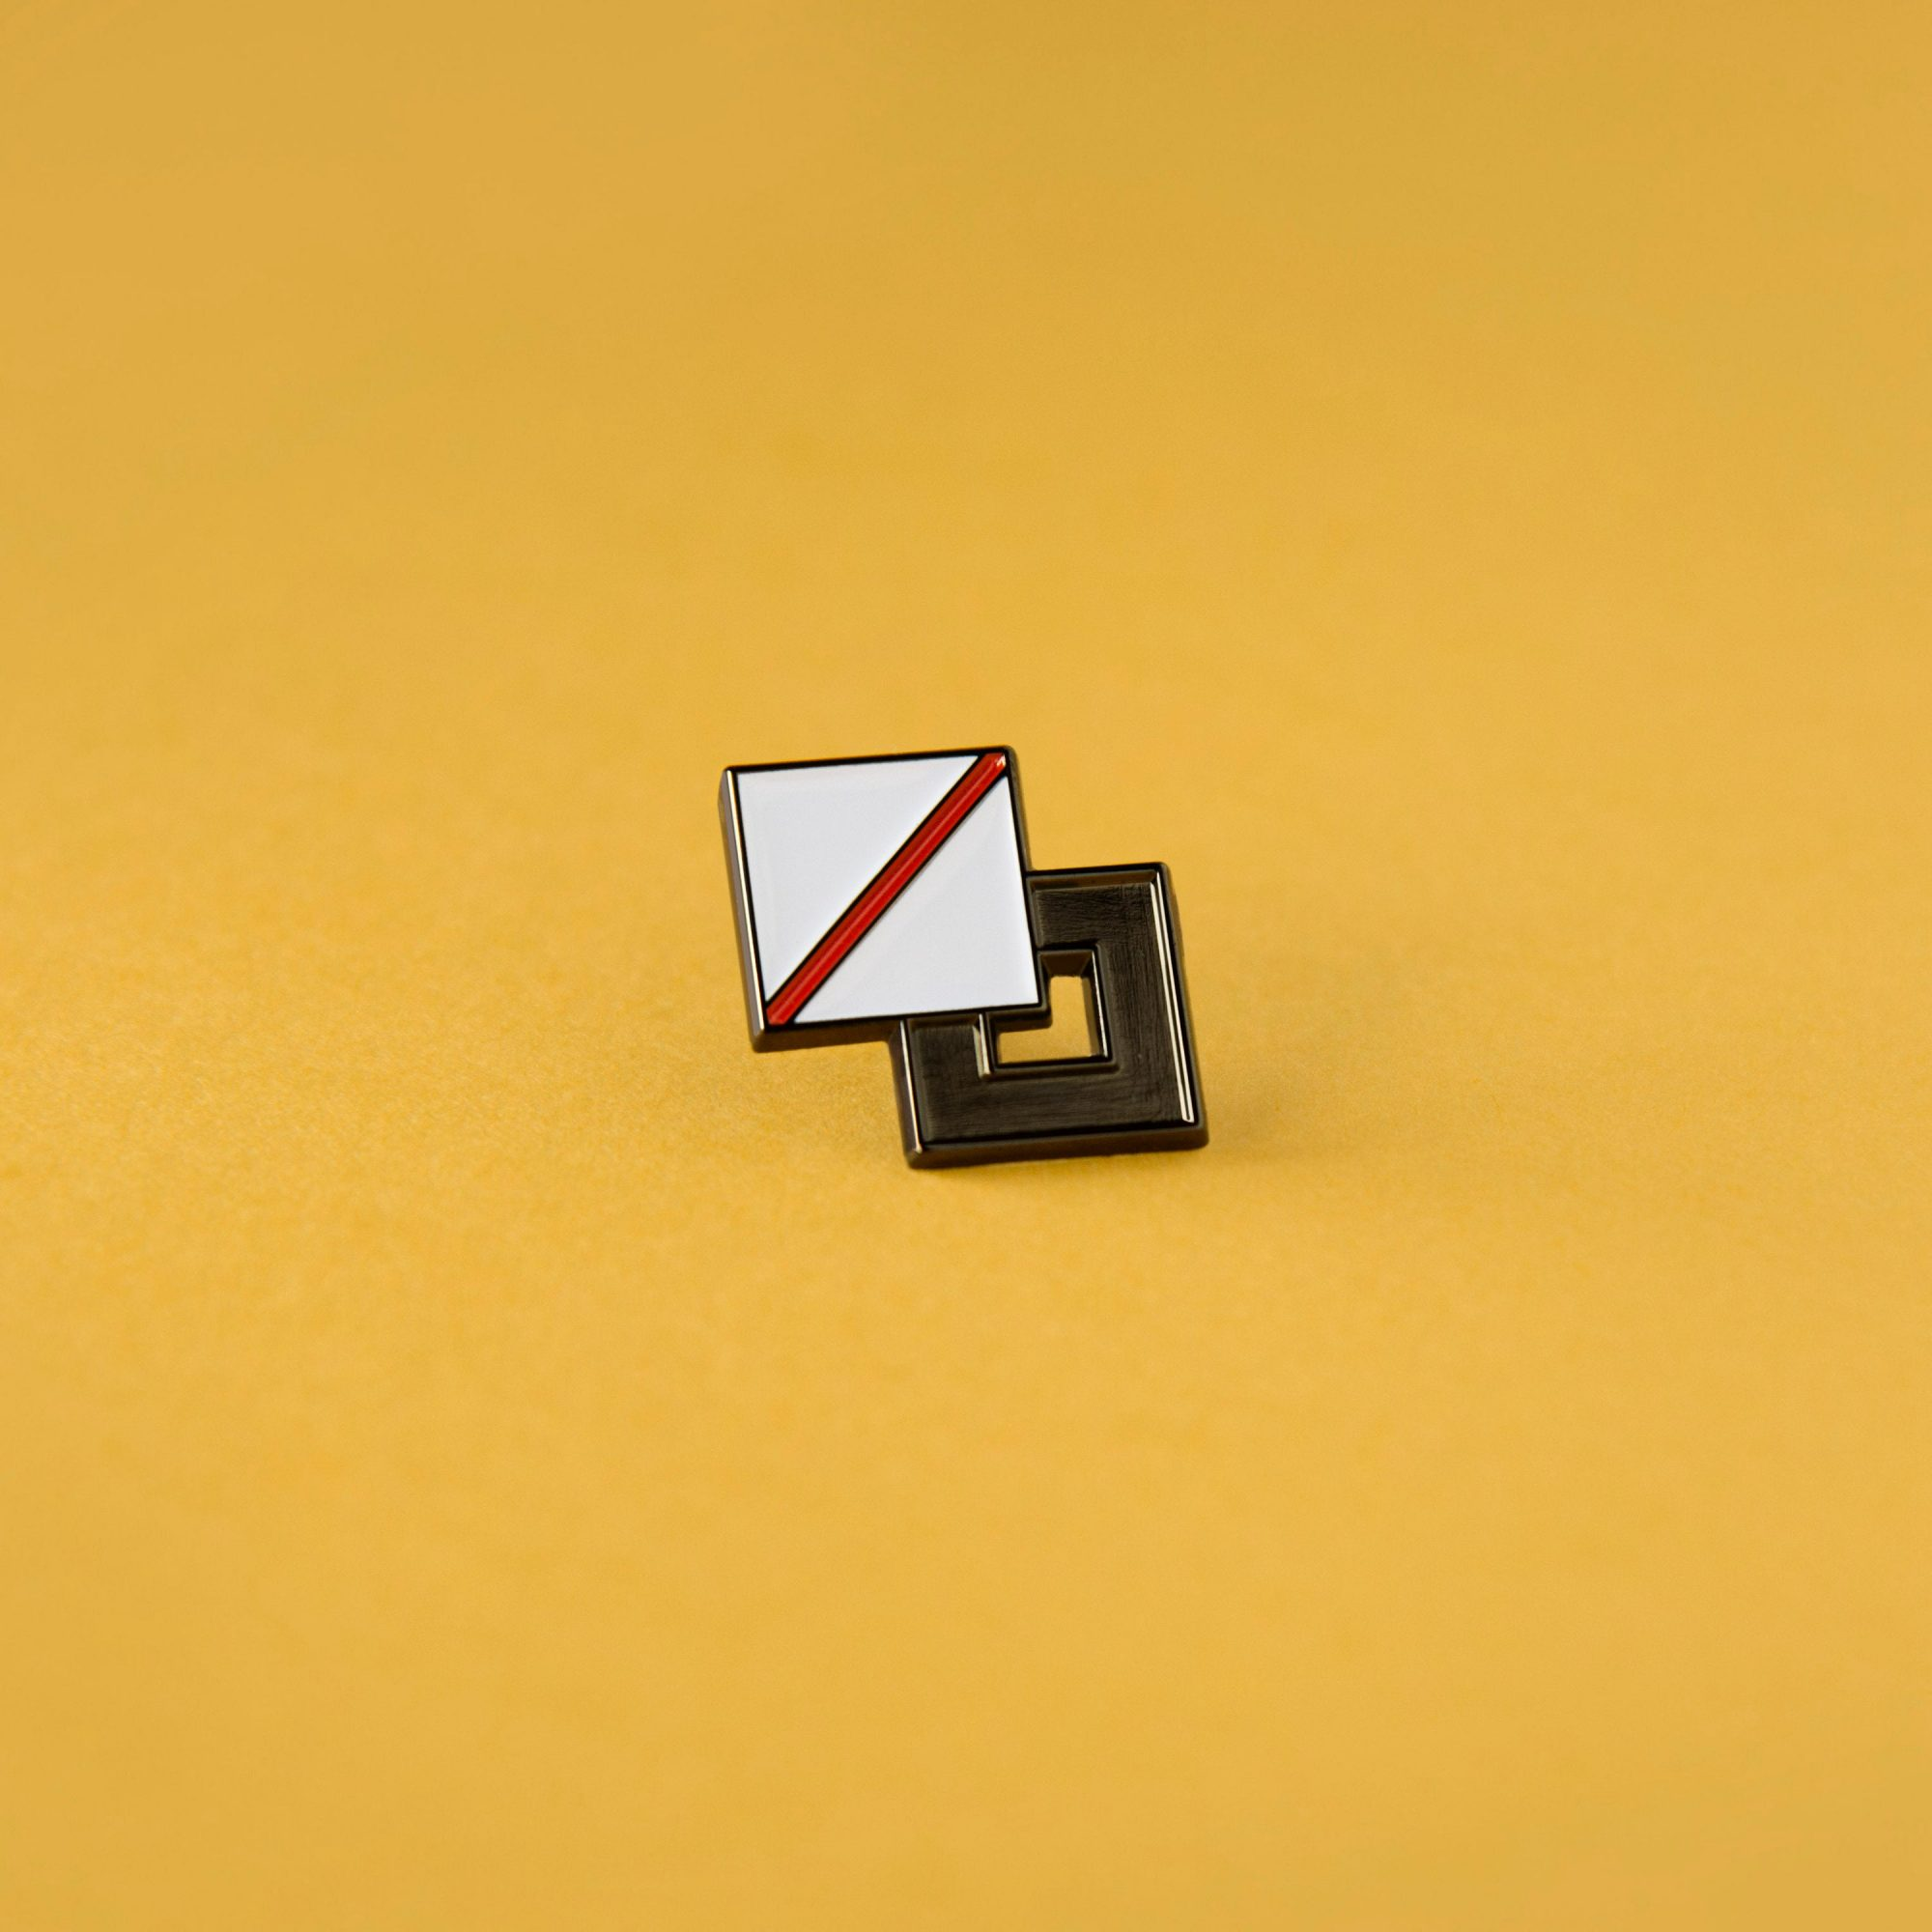 A photo of an enamel pin badge that resembles the palette option in design tools